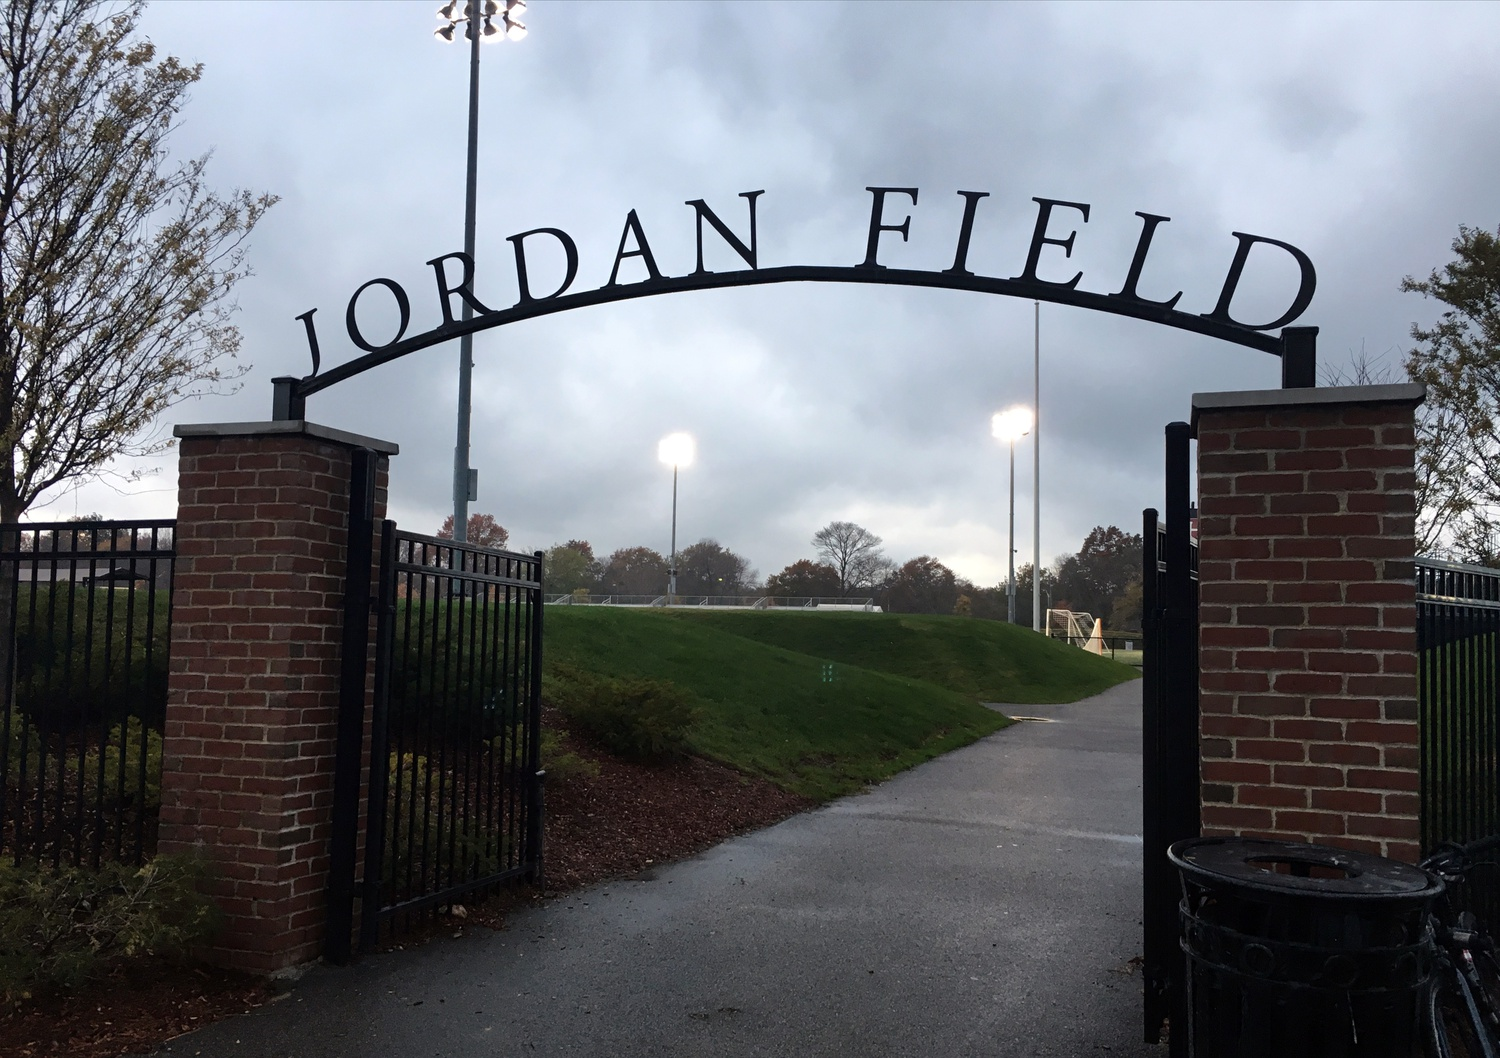 Jordan Field, the home of Harvard's soccer teams. Harvard Director of Athletics Erin McDermott said in an interview Wednesday she is hopeful sports teams will be able to safely compete this fall.